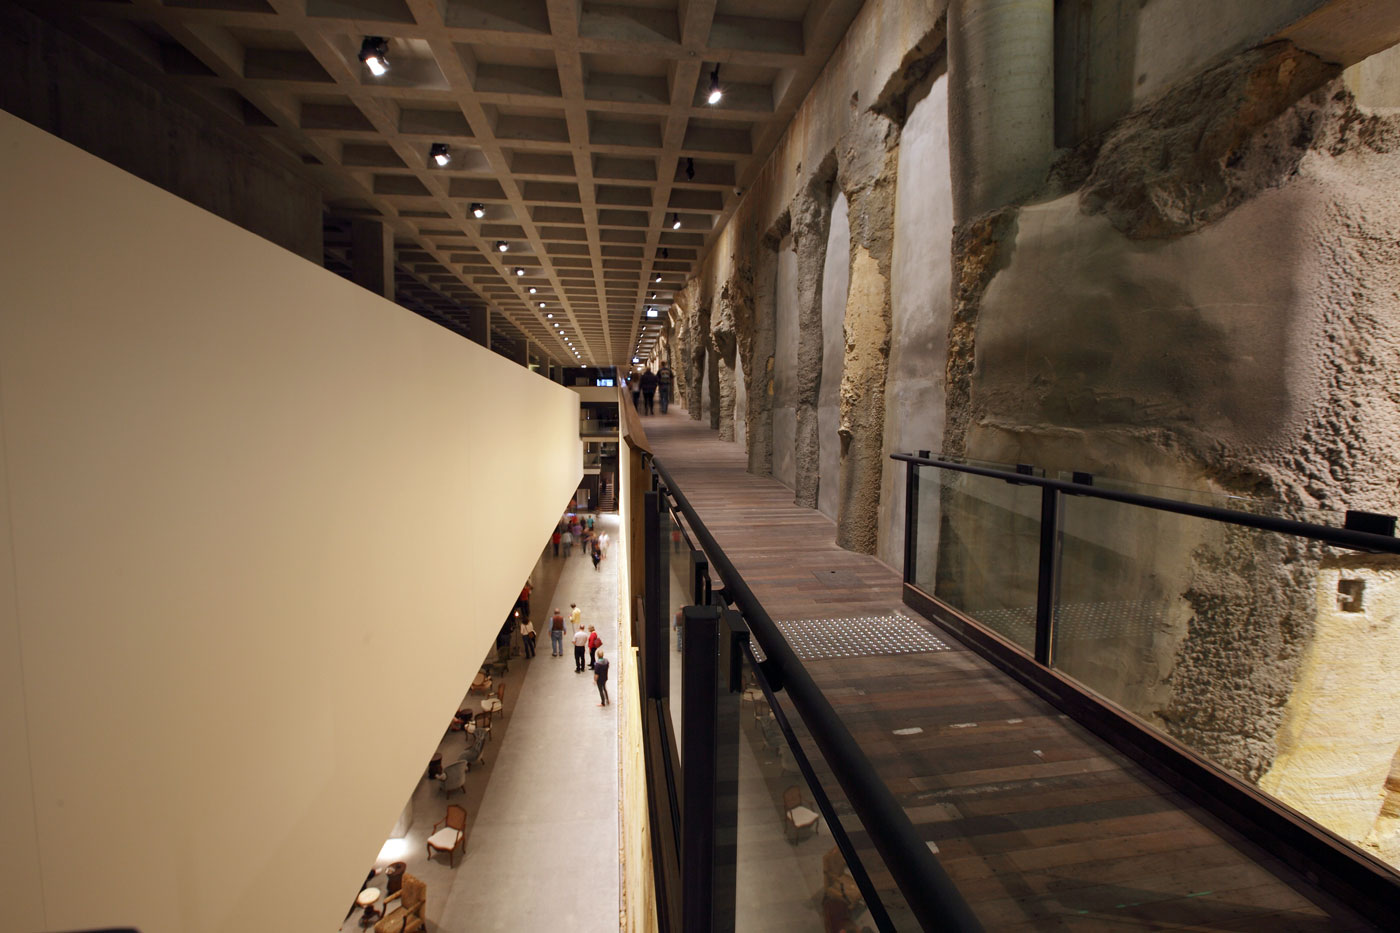 The museum of old and new art mona hobart art blart for Interior site